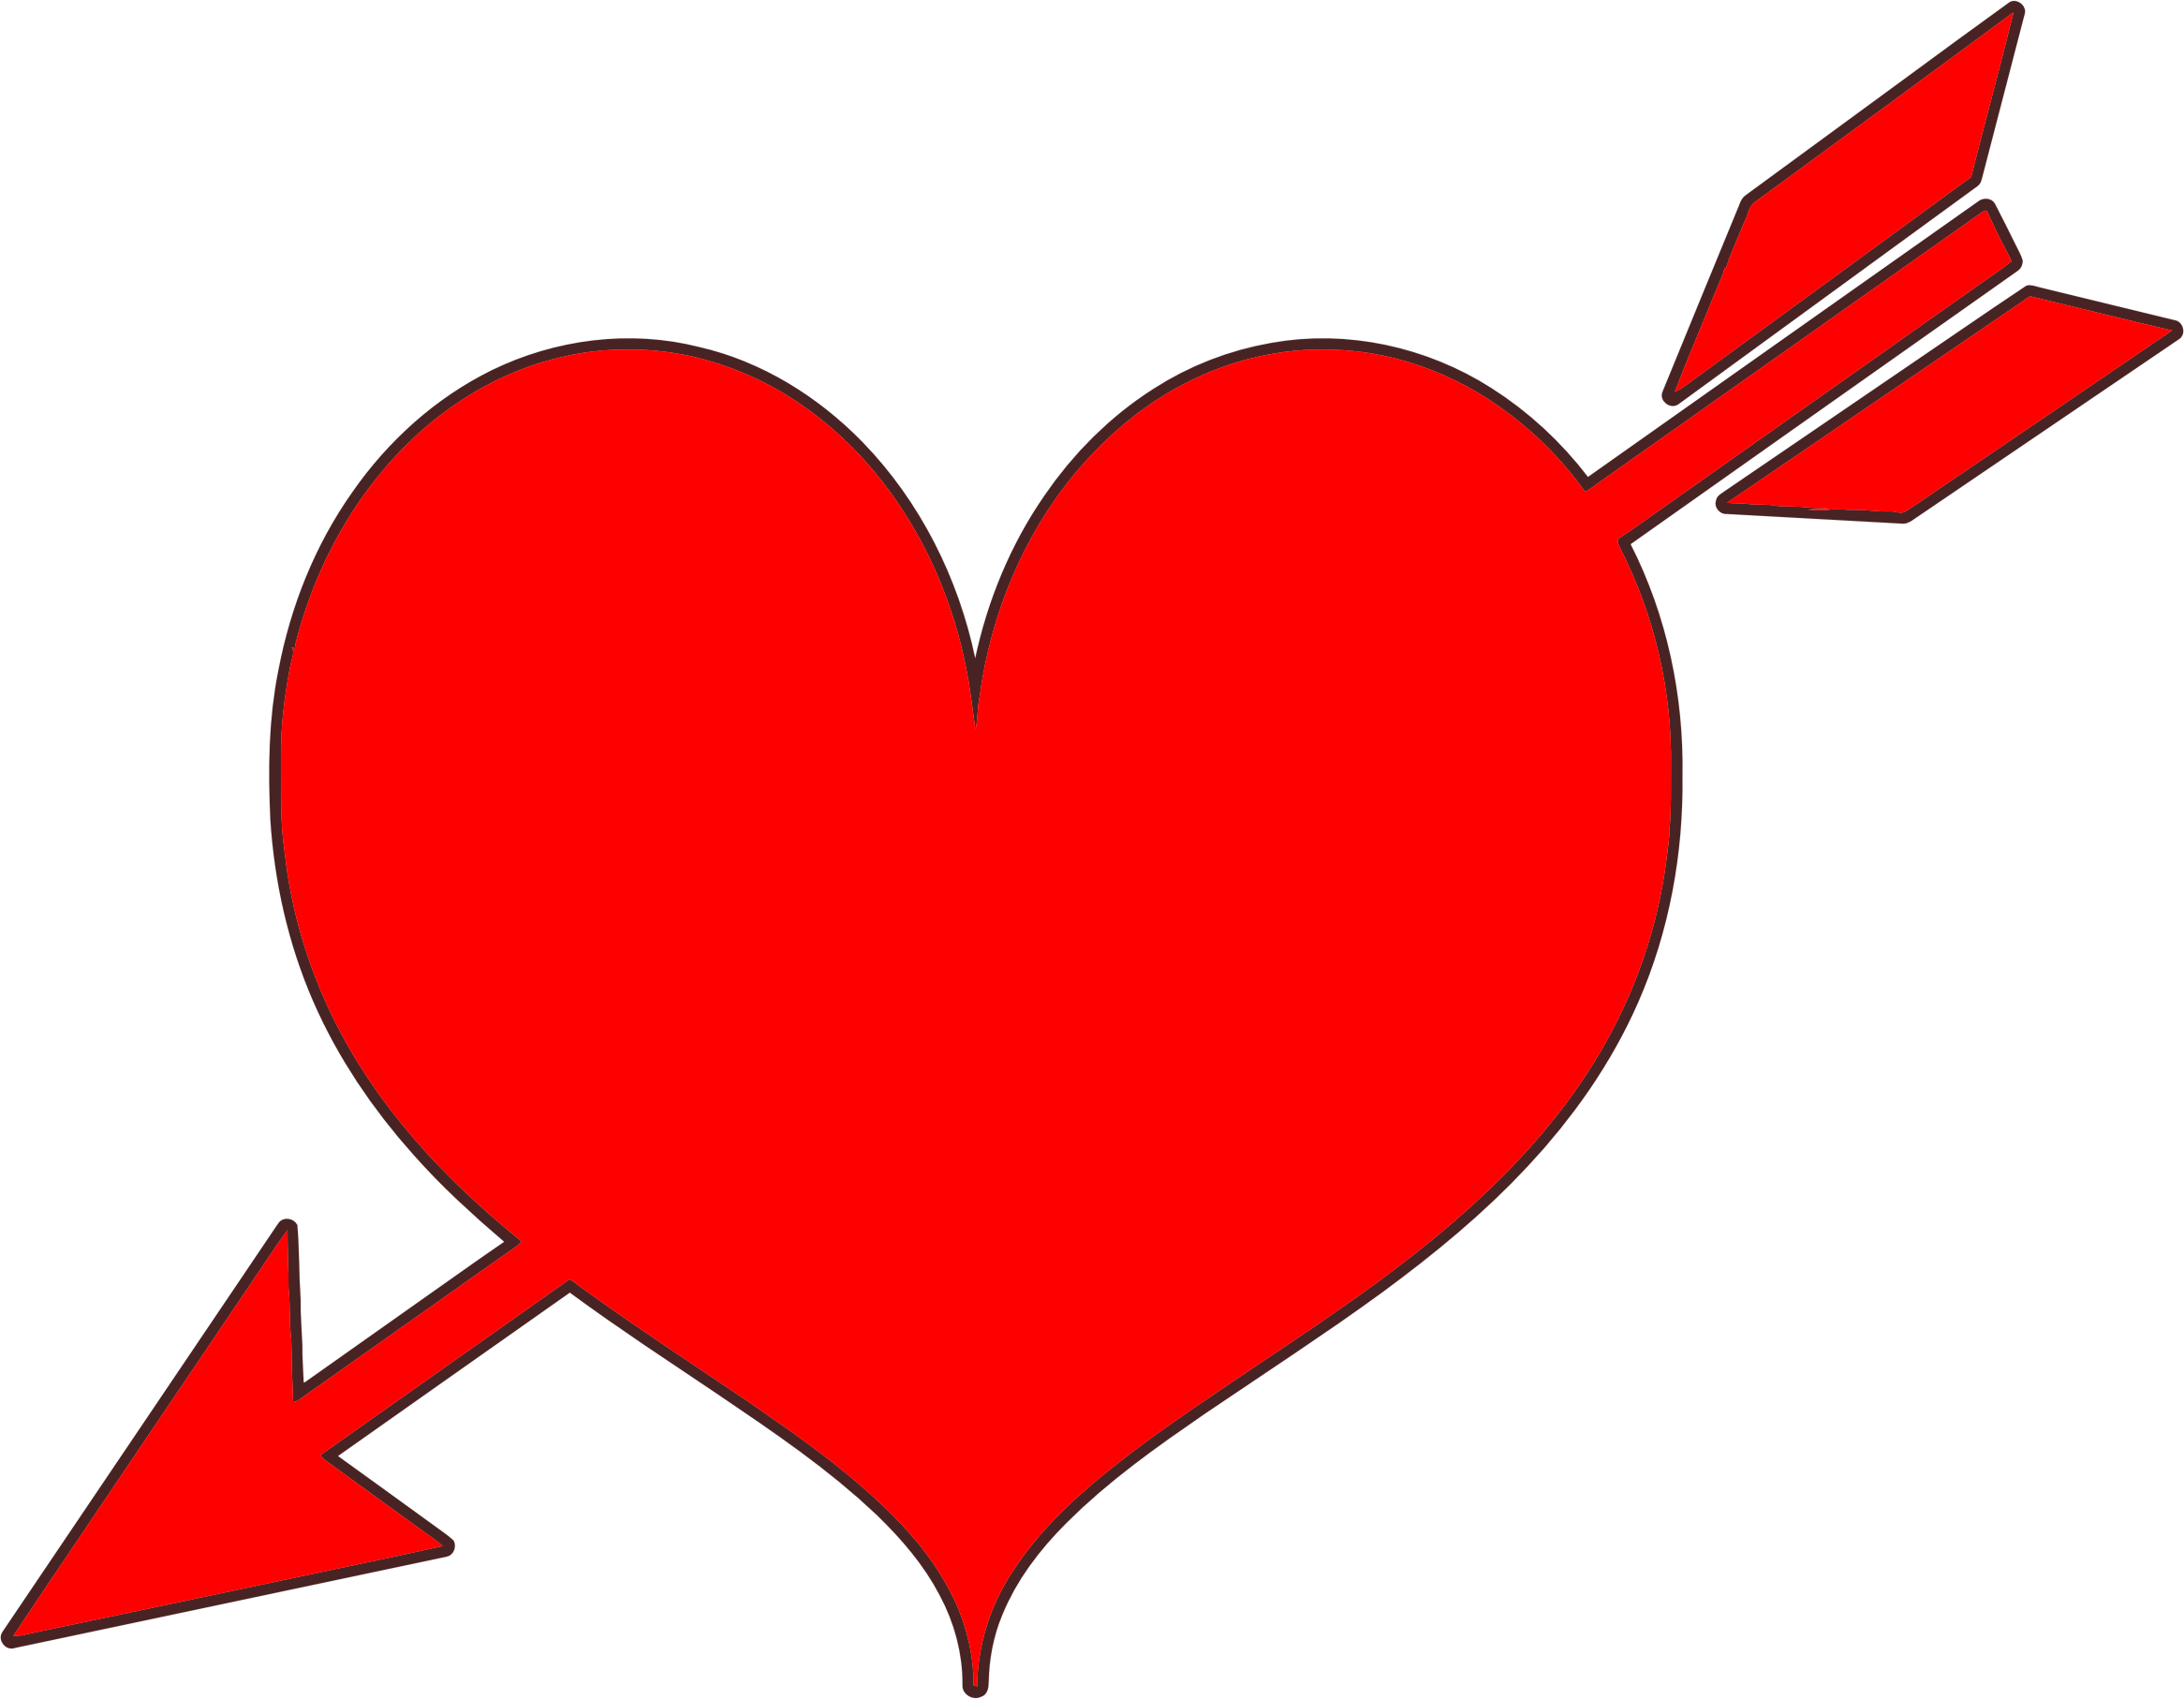 Arrow image png. Big clipart red heart